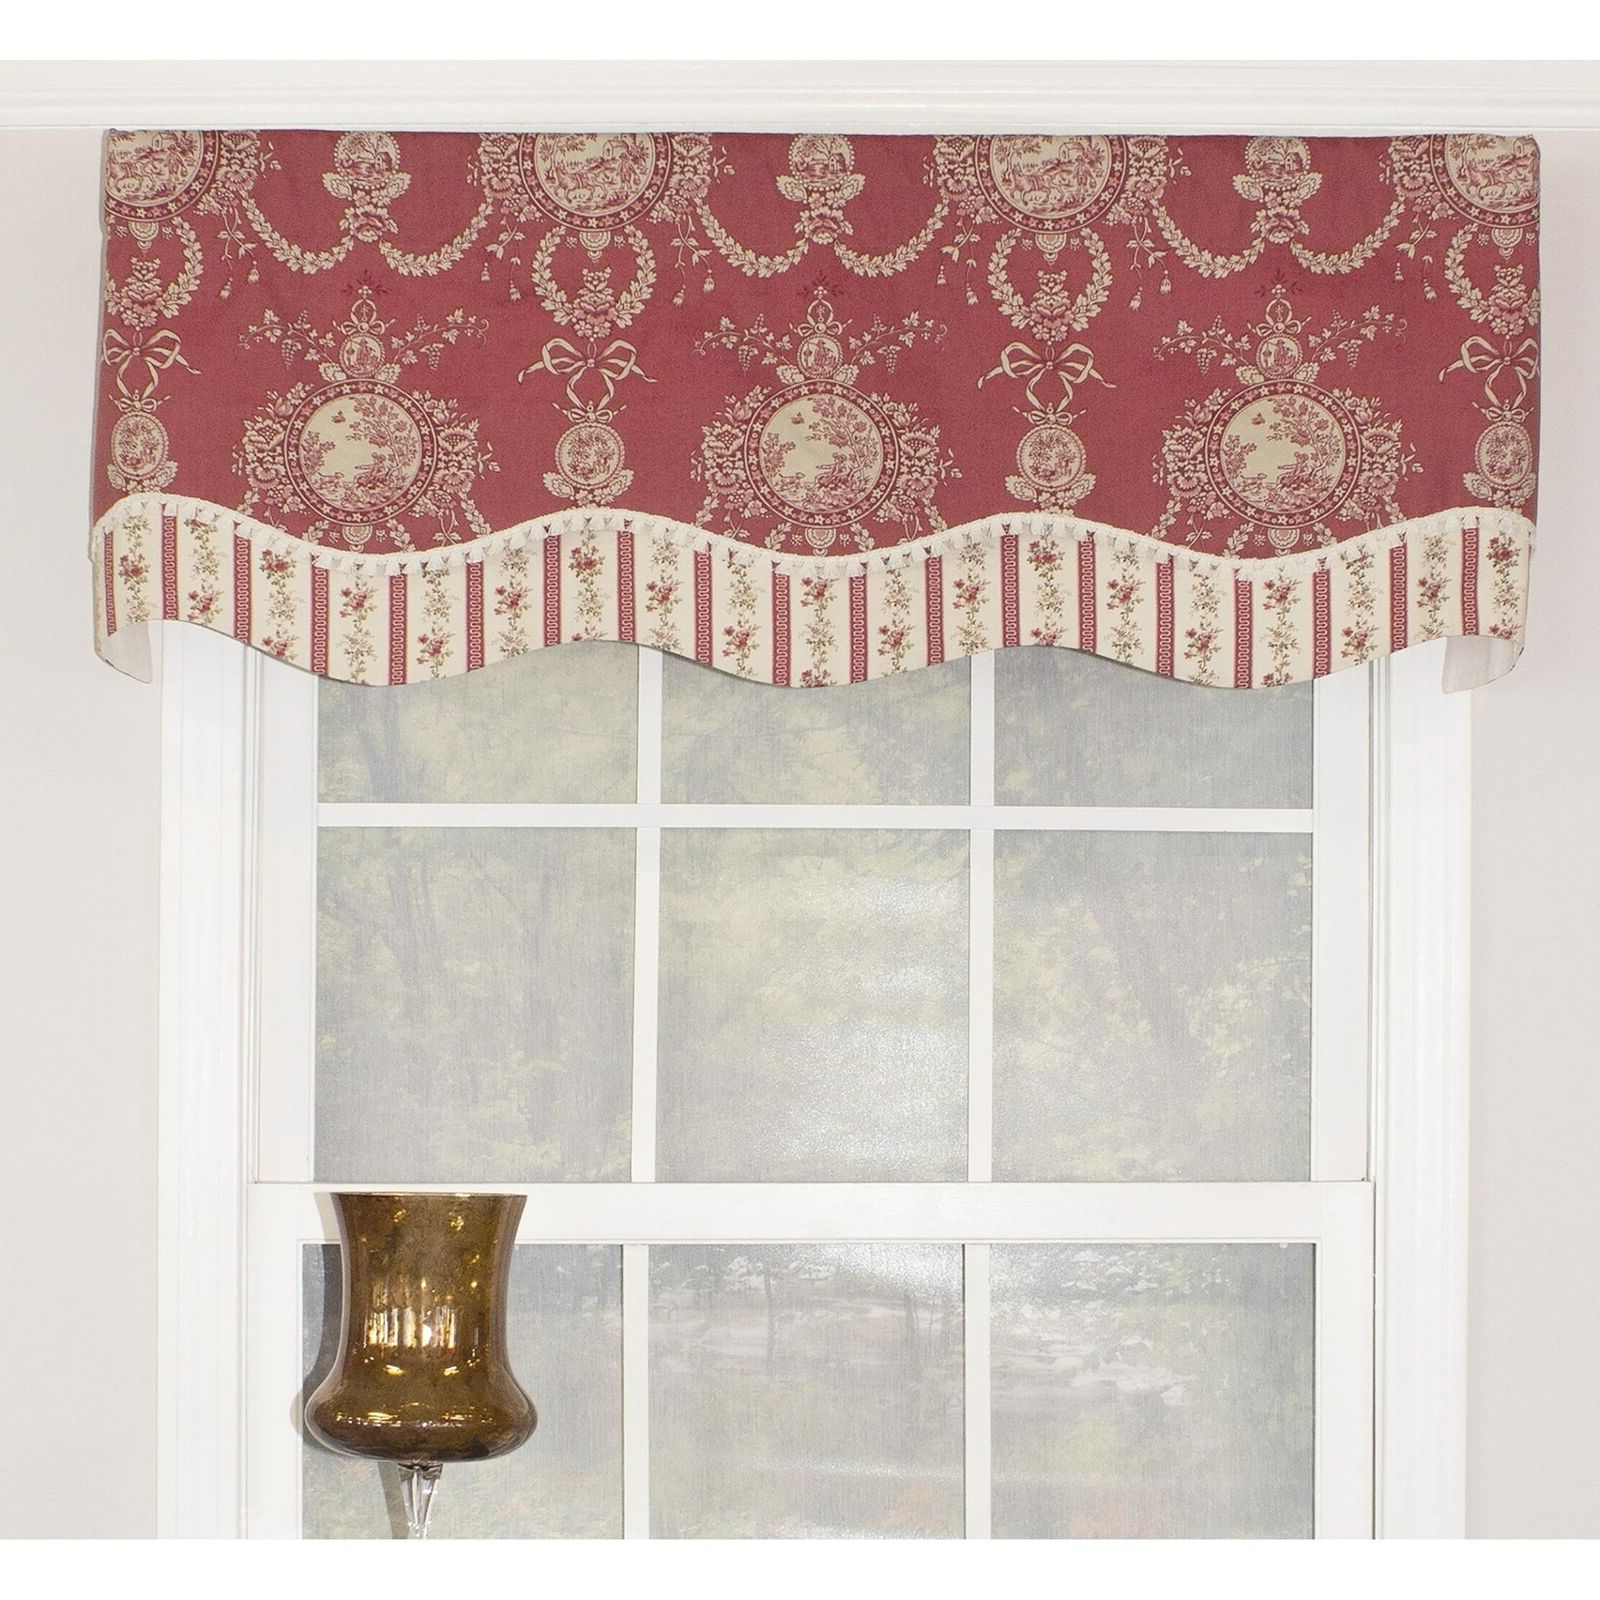 "Aviary Window Curtains For 2020 Rlf Home Cameo Toile Glory 50"" Window Valance – Red Red, Cream, Off White Horizo (View 14 of 20)"